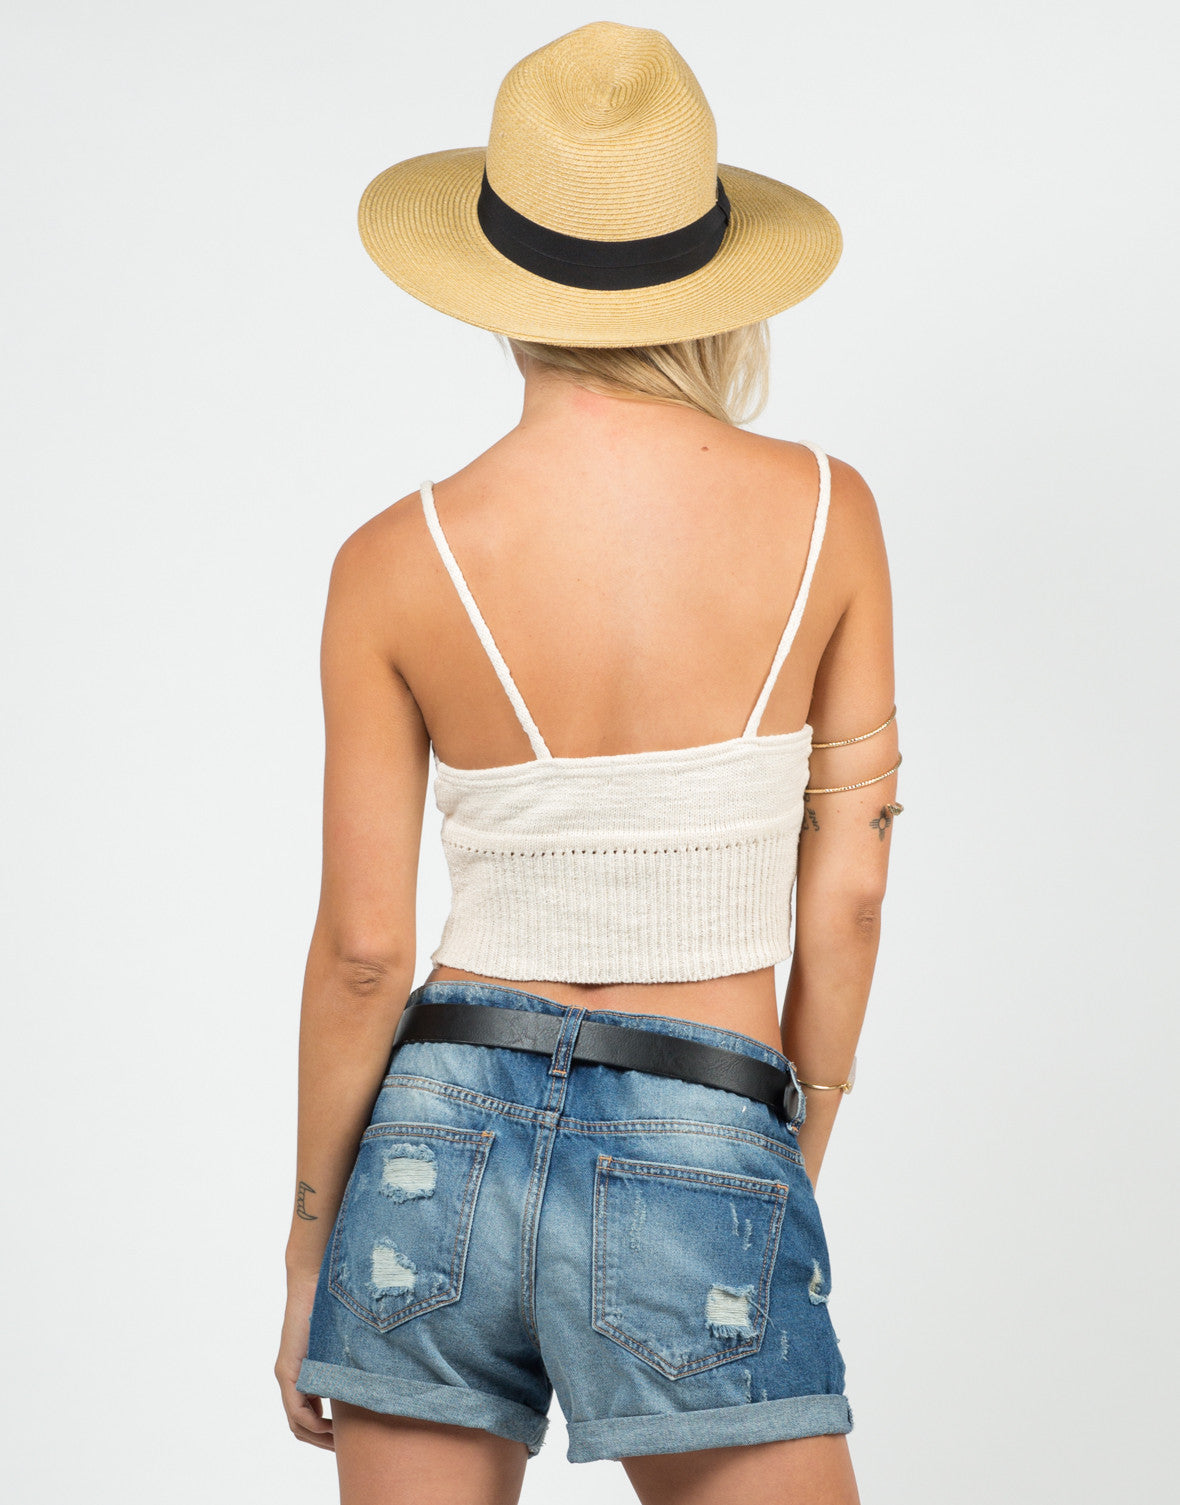 Back View of Knit Cropped Cami - Cream